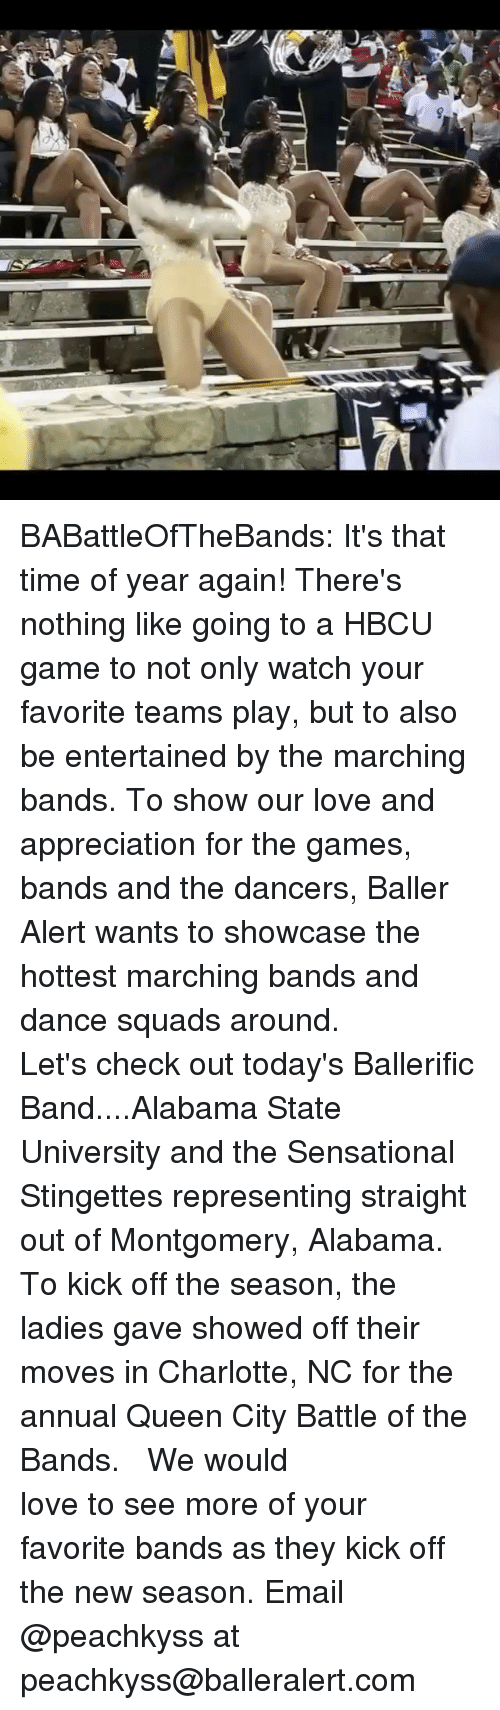 Dancee: BABattleOfTheBands: It's that time of year again! There's nothing like going to a HBCU game to not only watch your favorite teams play, but to also be entertained by the marching bands. To show our love and appreciation for the games, bands and the dancers, Baller Alert wants to showcase the hottest marching bands and dance squads around. ⠀⠀⠀ ⠀⠀⠀⠀⠀⠀⠀ Let's check out today's Ballerific Band....Alabama State University and the Sensational Stingettes representing straight out of Montgomery, Alabama. To kick off the season, the ladies gave showed off their moves in Charlotte, NC for the annual Queen City Battle of the Bands. ⠀⠀⠀⠀⠀⠀⠀ ⠀⠀⠀⠀⠀⠀⠀ We would love to see more of your favorite bands as they kick off the new season. Email @peachkyss at peachkyss@balleralert.com